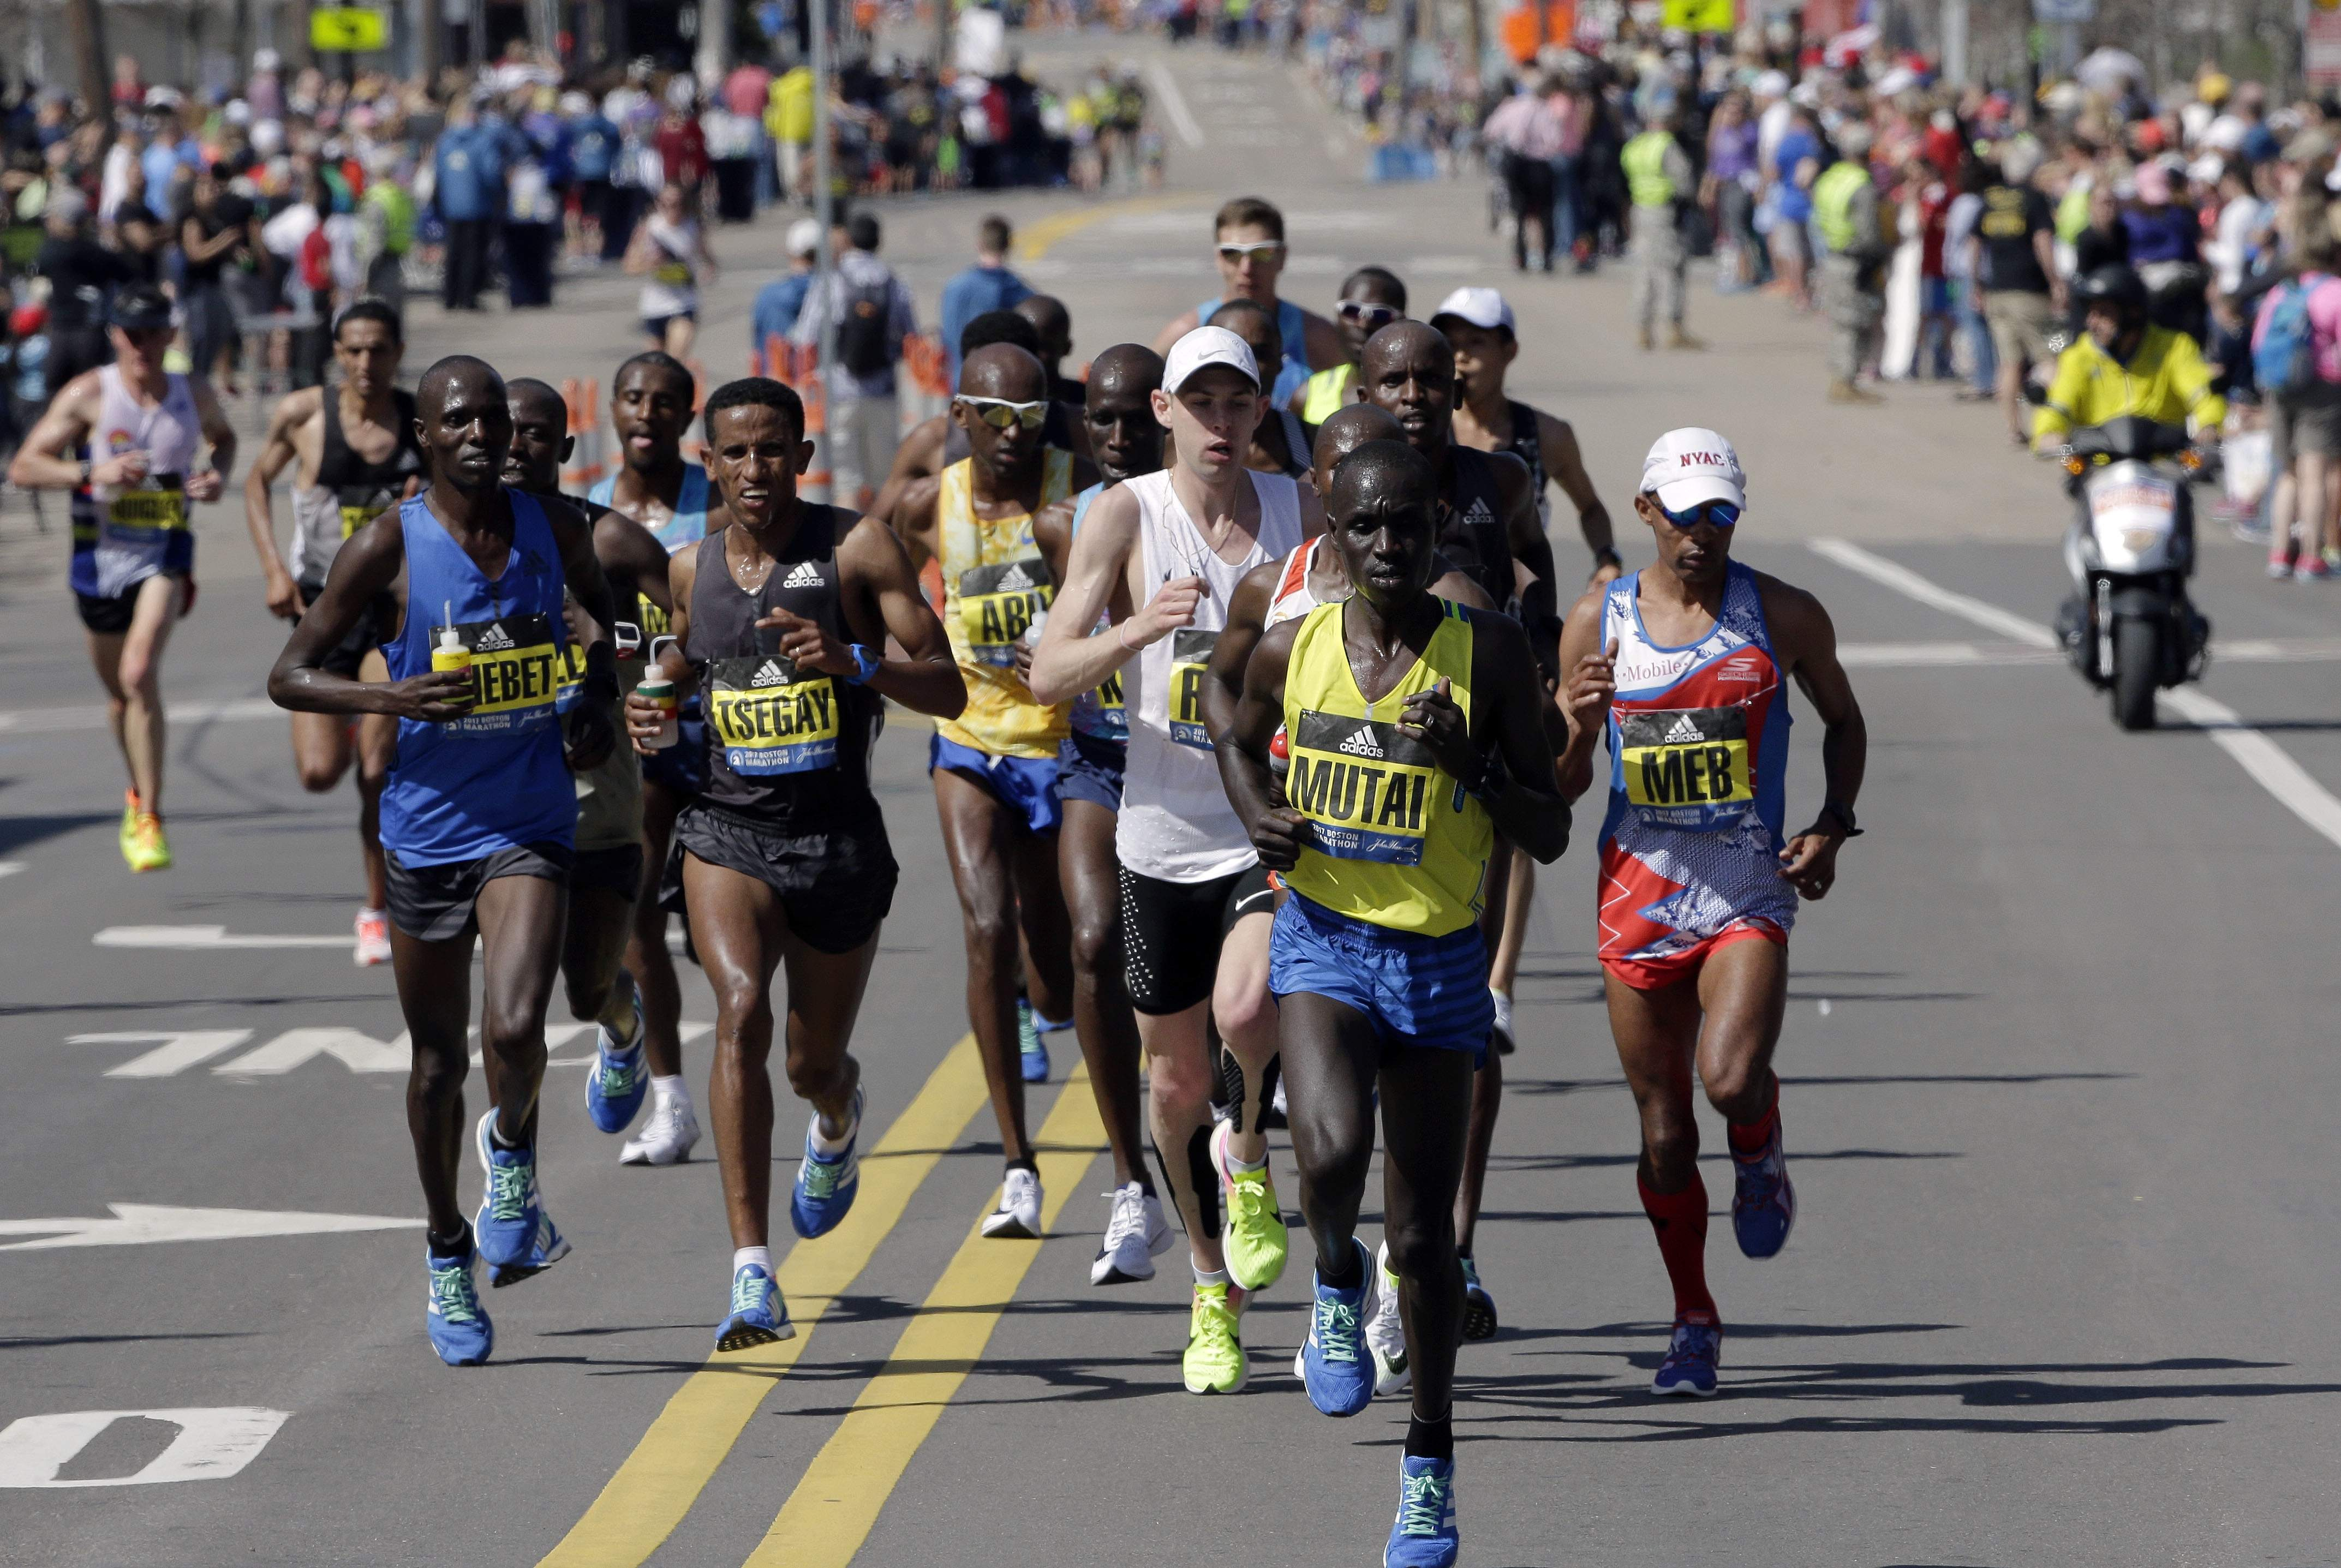 Emmanuel Mutai, of Kenya, leads the pack along the course of the 121st Boston Marathon on Monday, April 17, 2017, in Framingham, Mass. THE ASSOCIATED PRESS